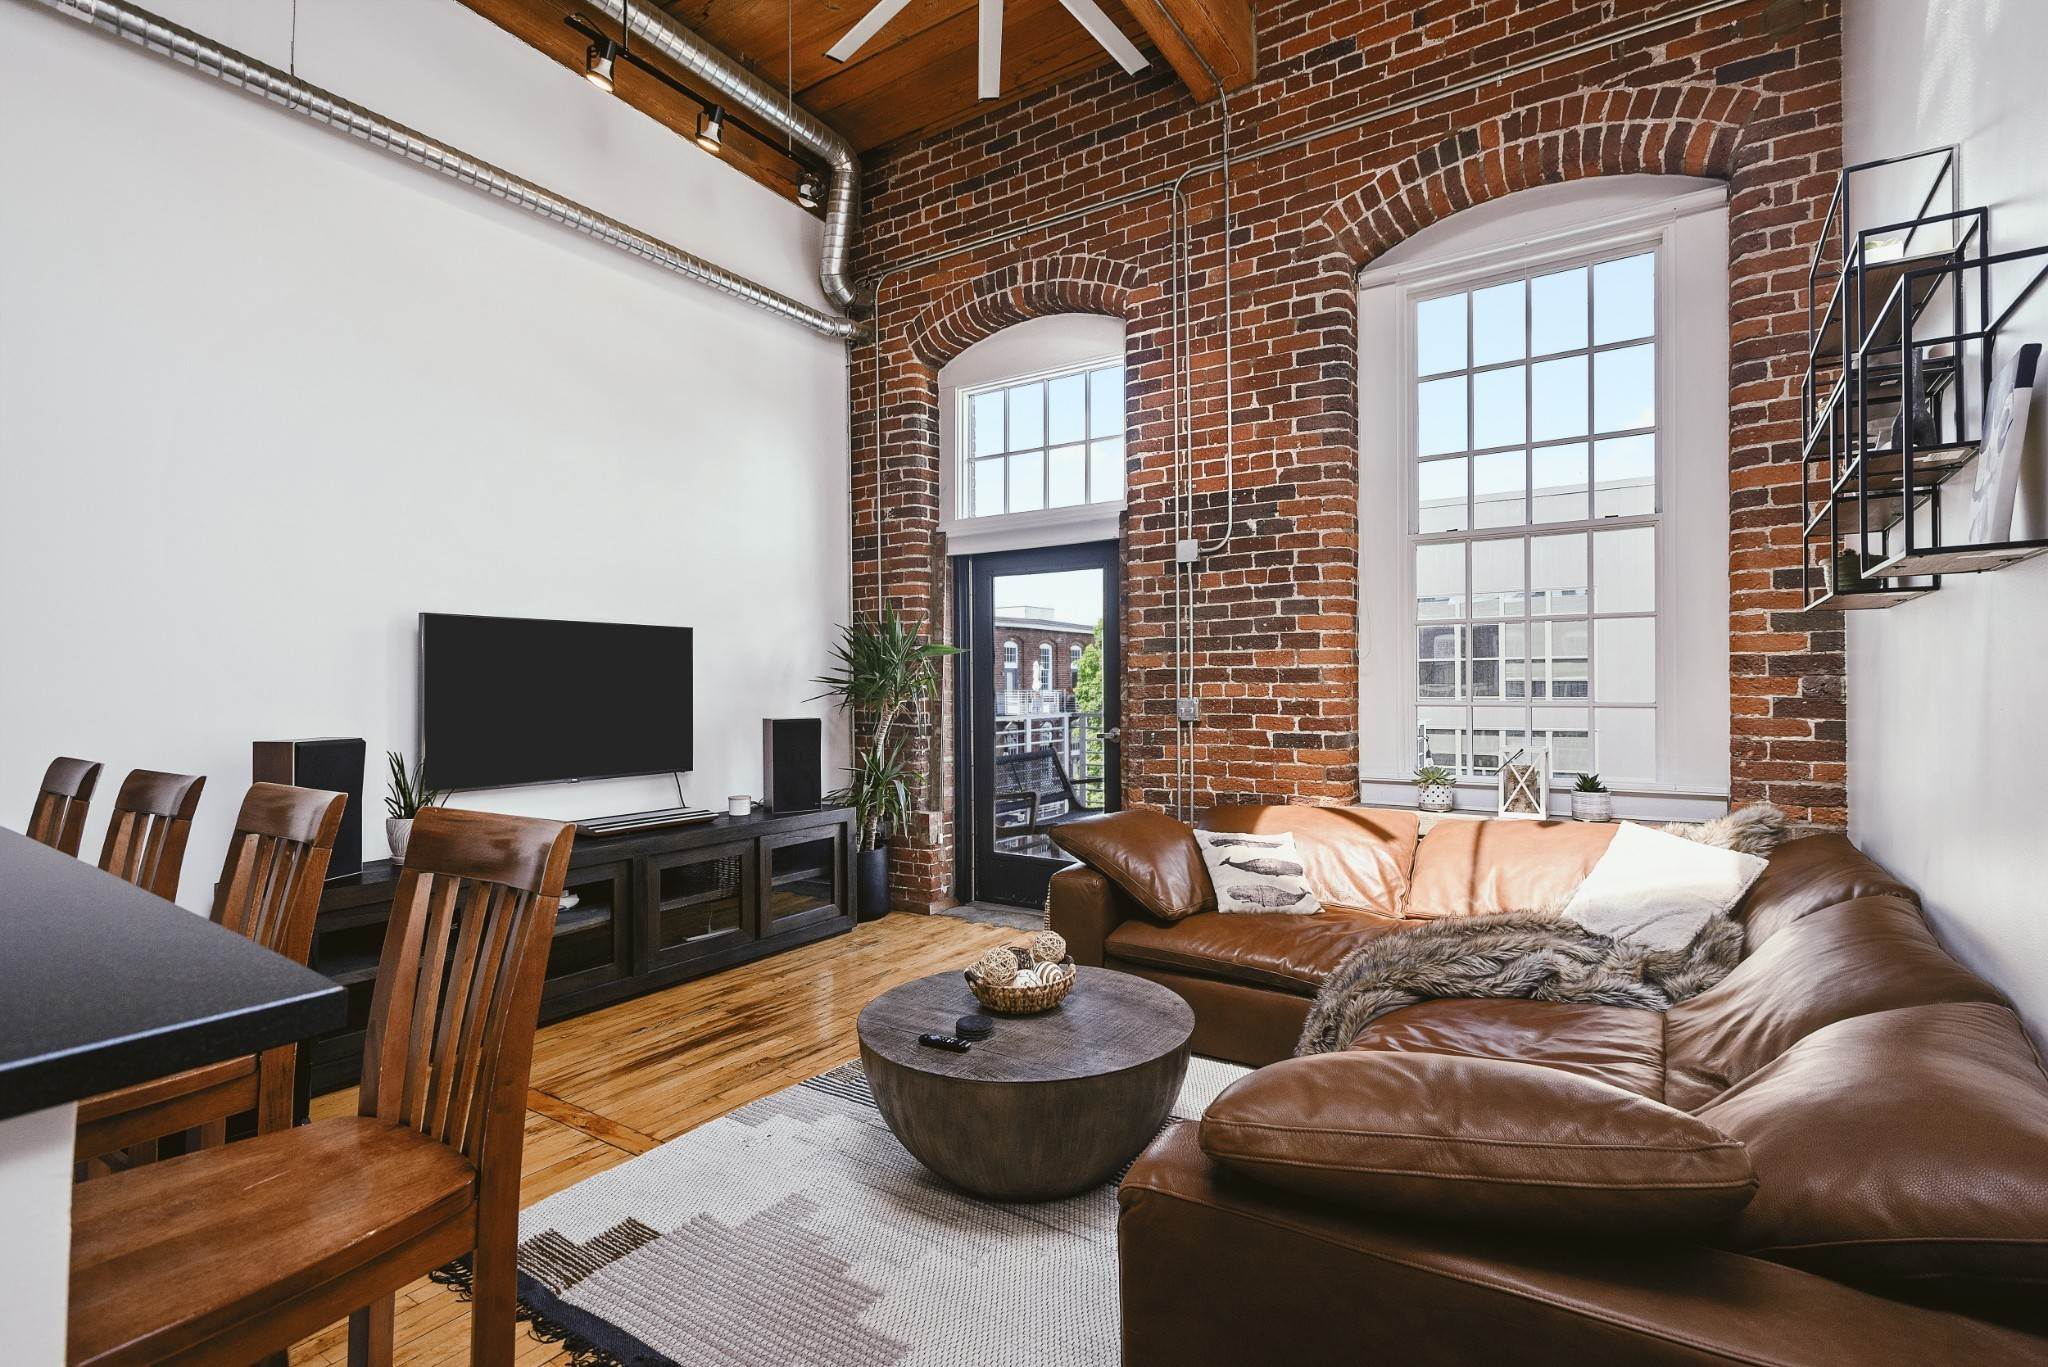 Lofts for Sale at 1350 Rosa L Parks Blvd #427 Nashville, Tennessee 37208 United States